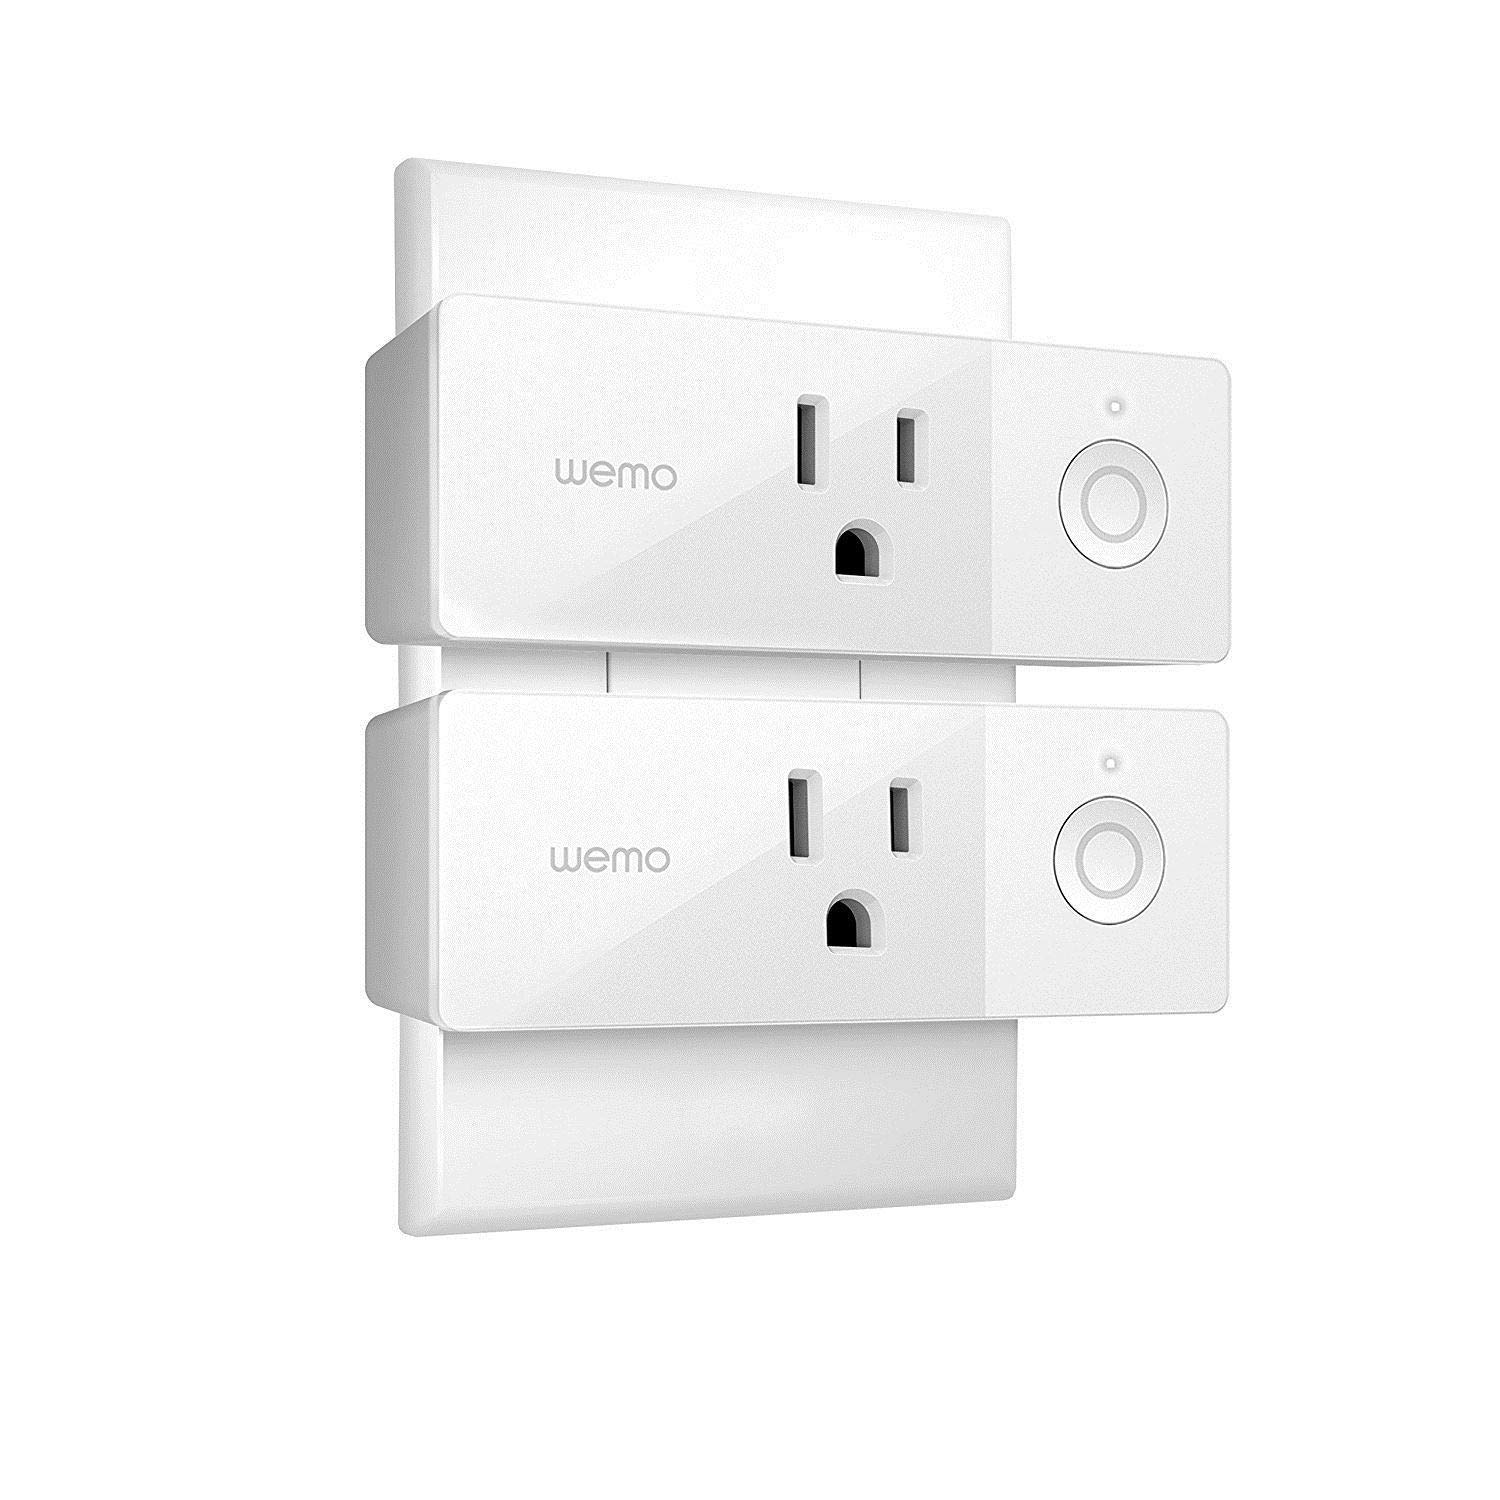 Wemo Mini Smart Plug (2-Pack), Wi-Fi Enabled, Works with Amazon Alexa (F7C063-RM2) (Certified Refurbished)